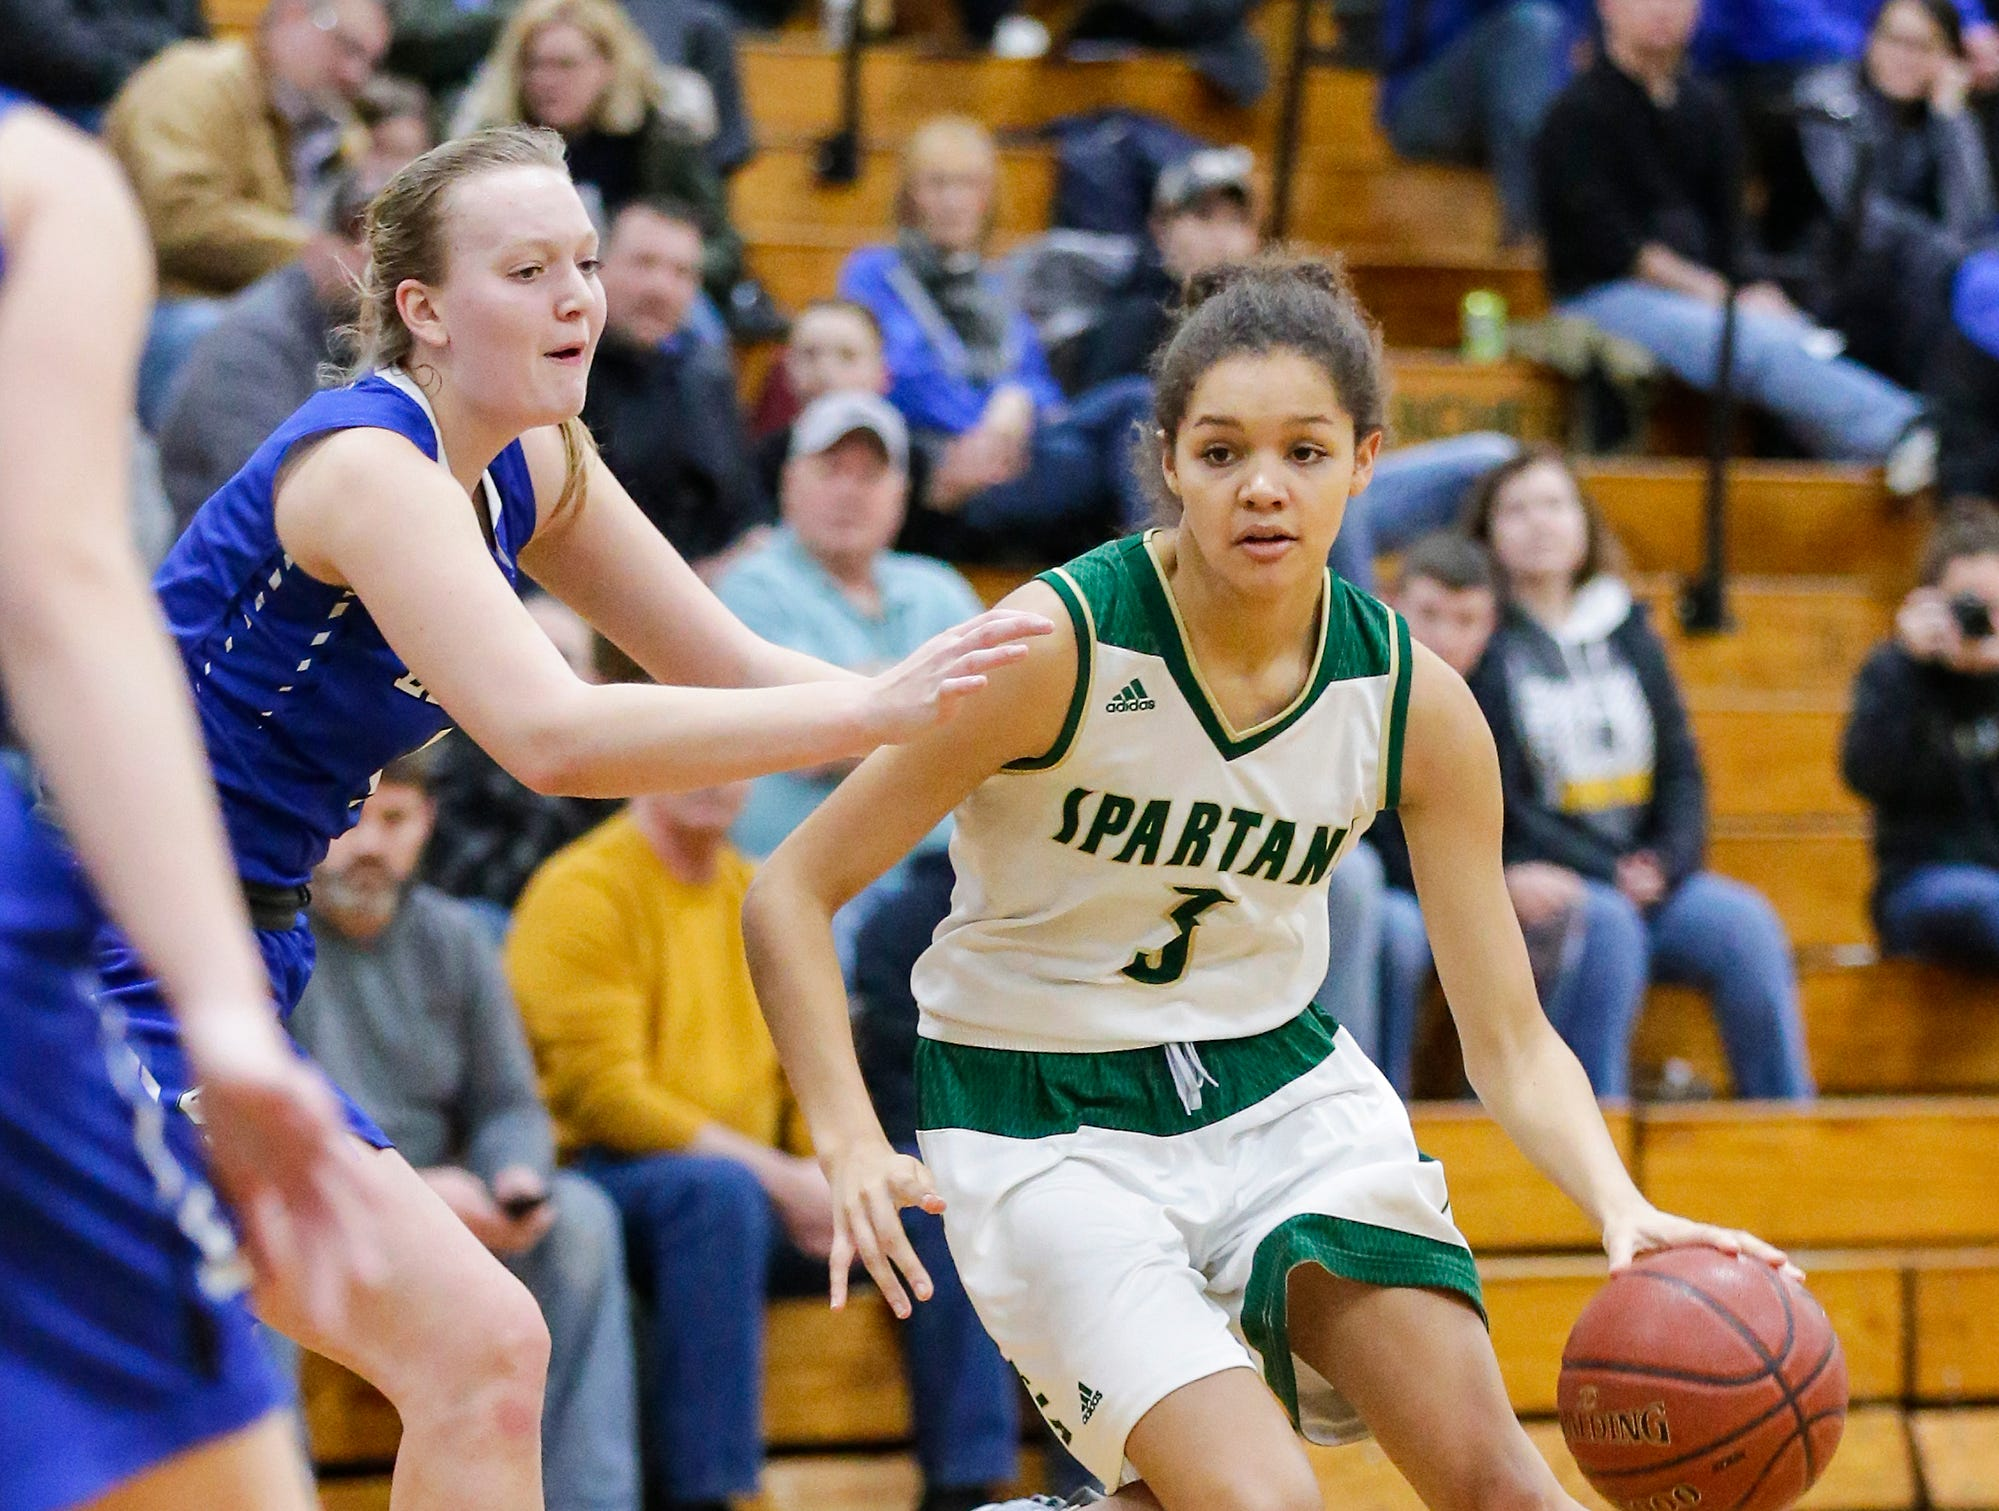 Laconia High School girls basketball's Kiarra Otto makes her way around St. Mary's Springs Academy's Brianna Fruend Tuesday, January 15, 2019 during their game in Rosendale. Laconia won the game 57-45. Doug Raflik/USA TODAY NETWORK-Wisconsin